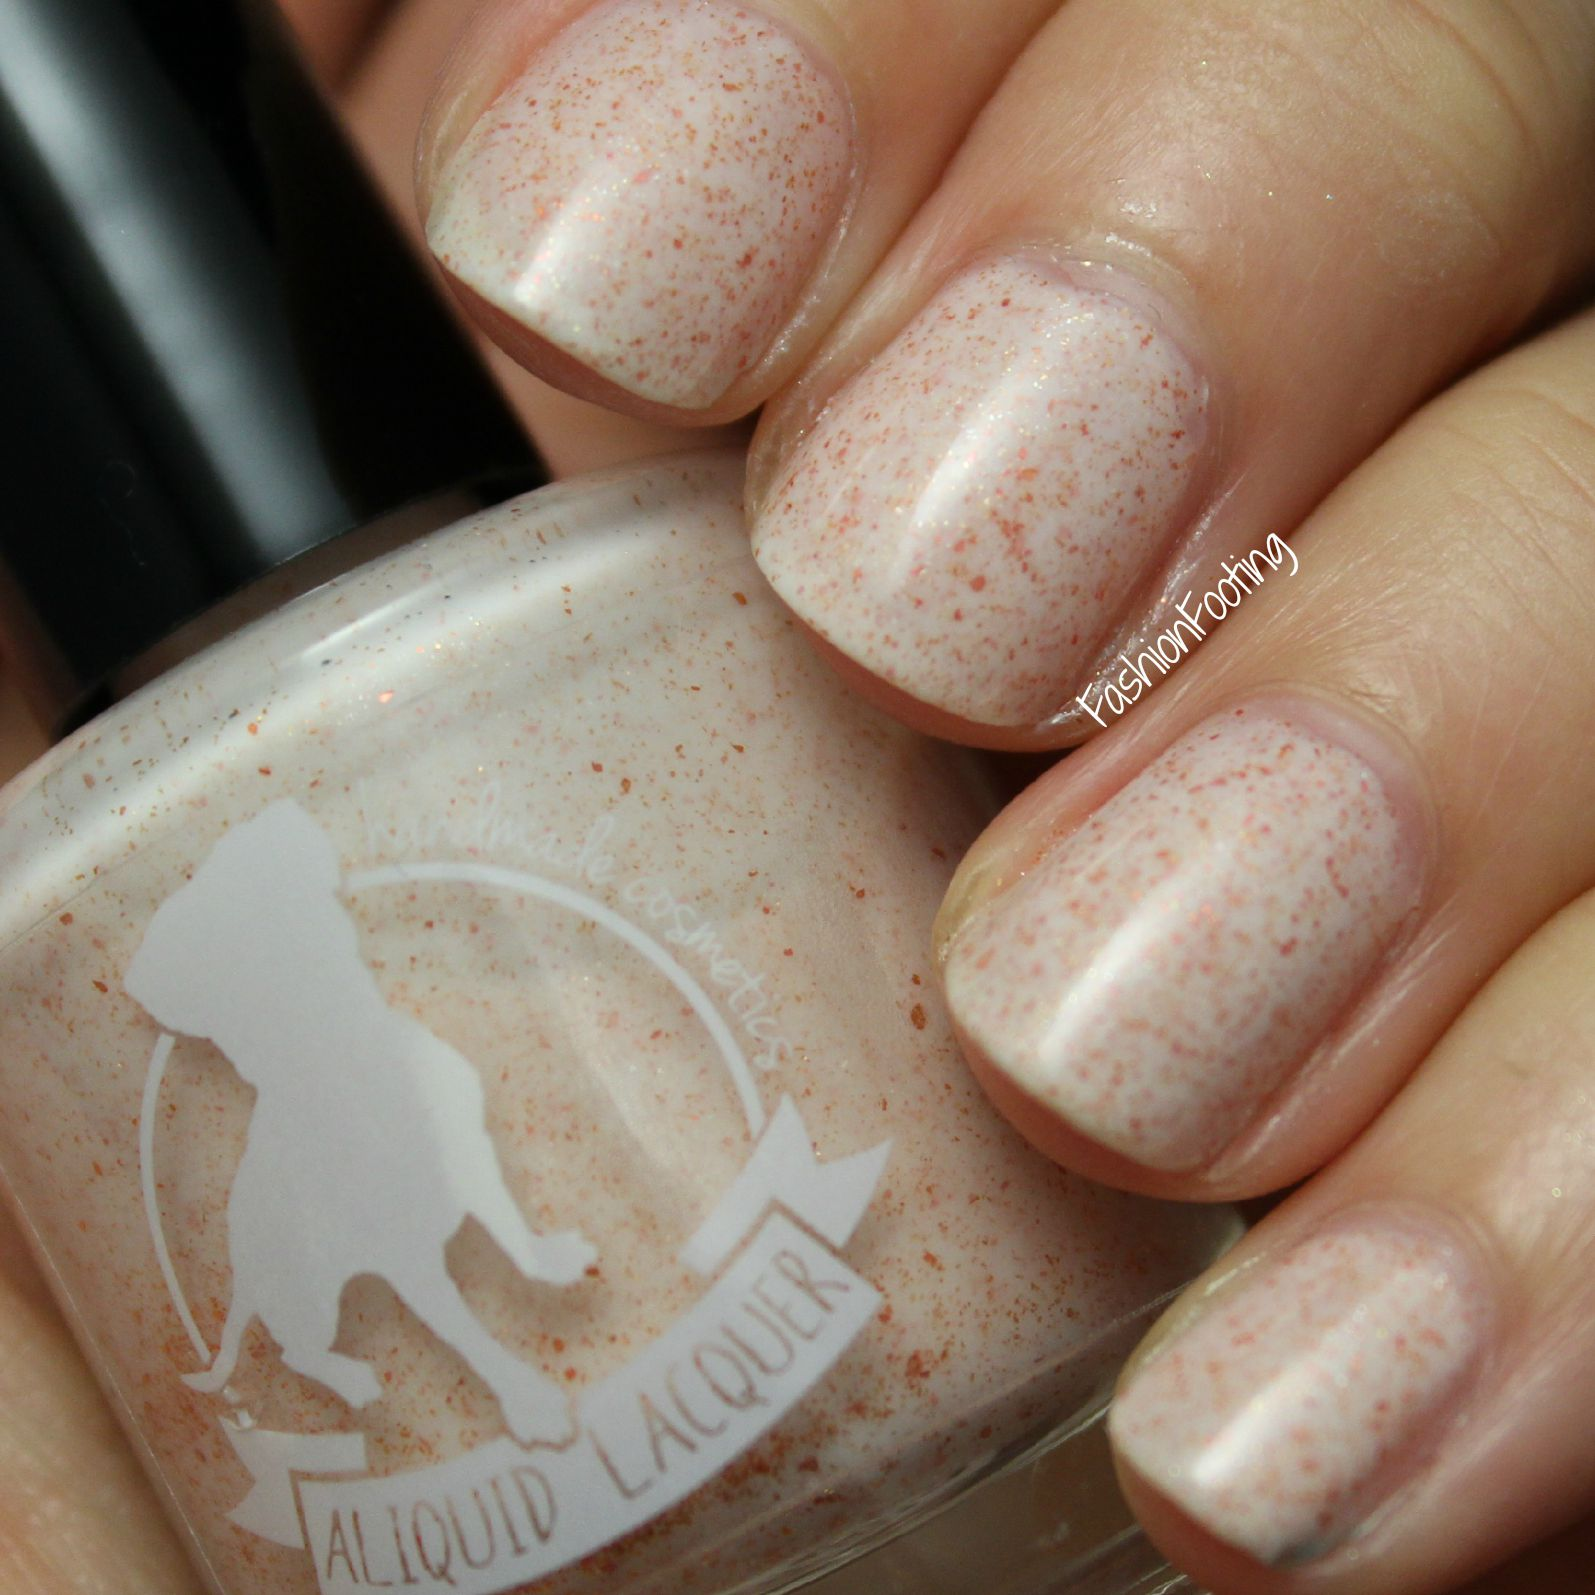 Fashion Footing: Aliquid Lacquer Swatches